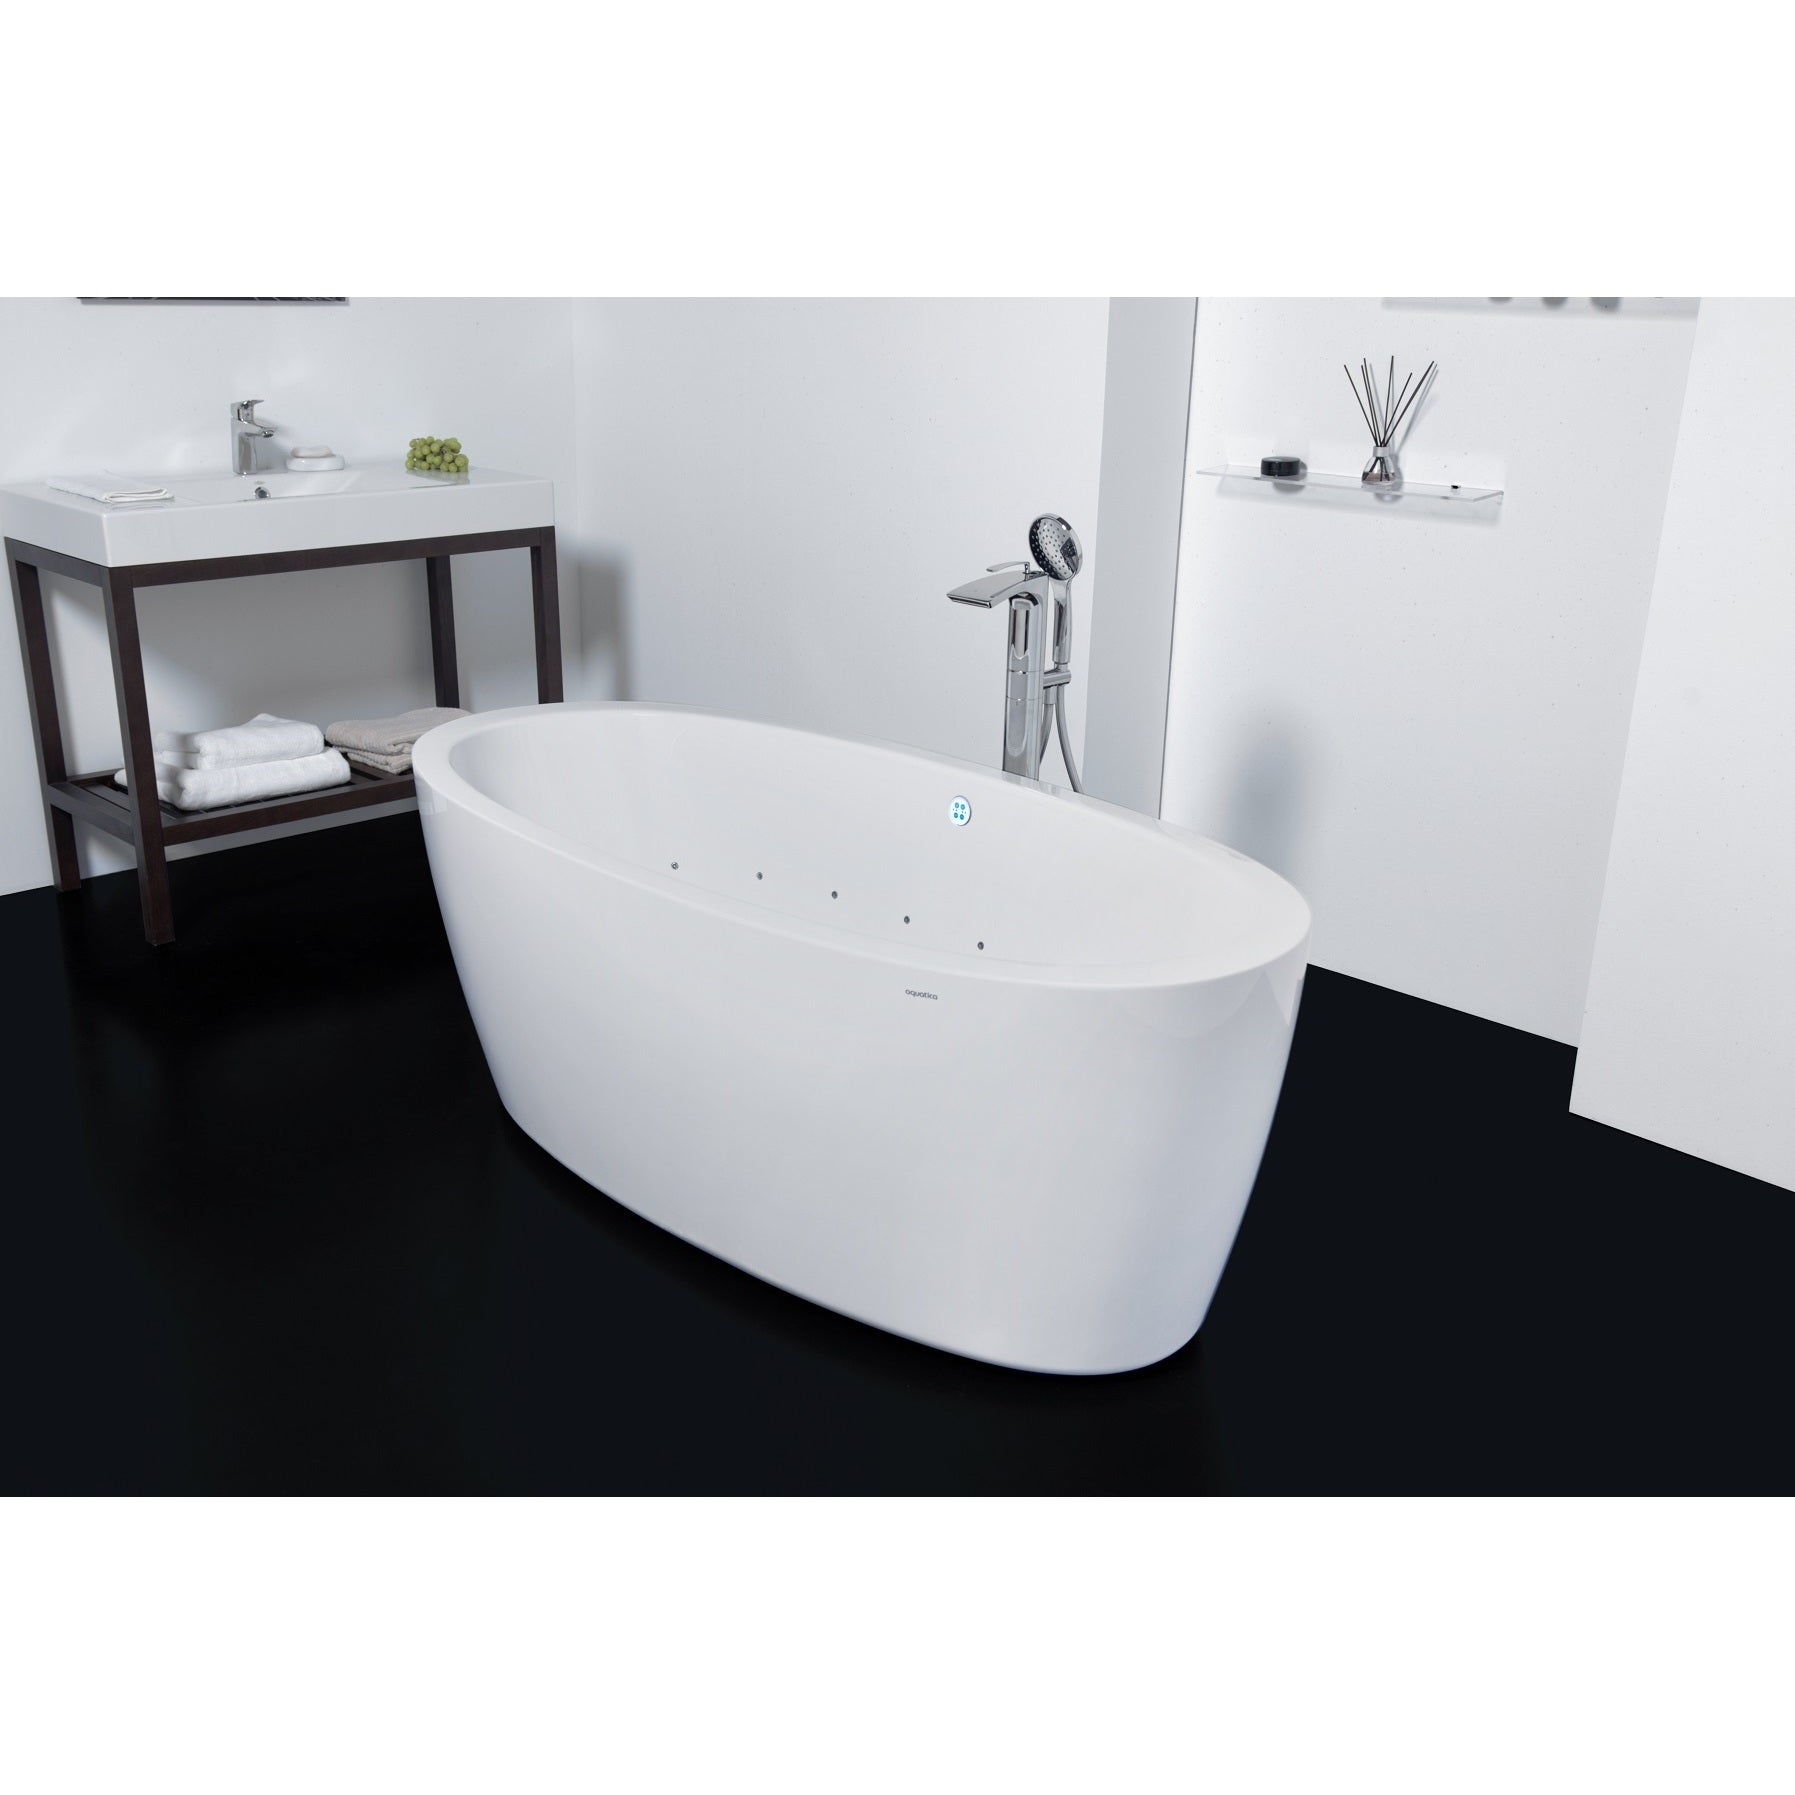 Aquatica Purescape 174A Relax Air Massage Bathtub - Free Shipping ...